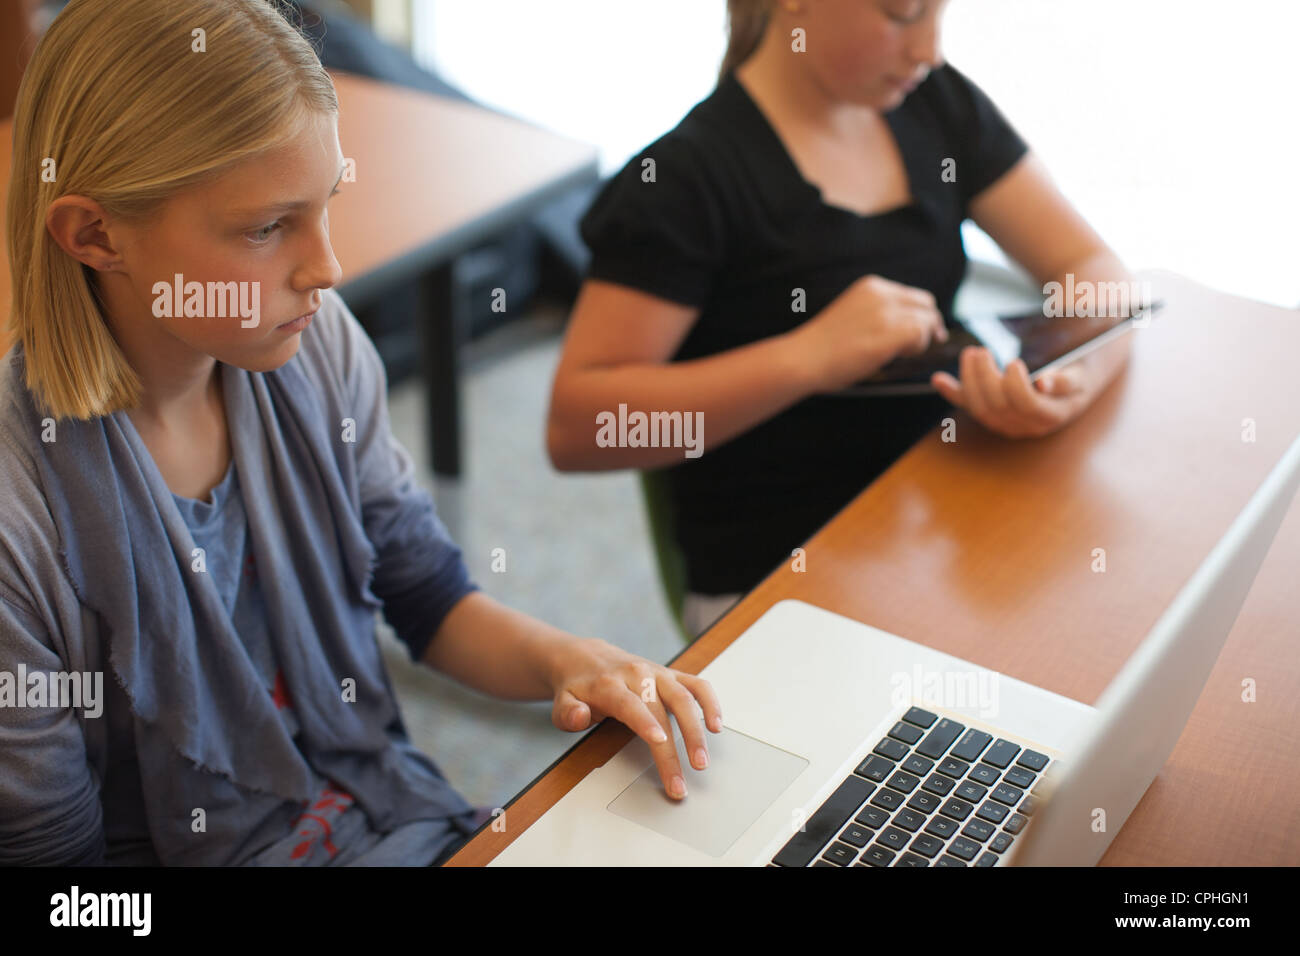 Two middle school girls using technology in a classroom; laptop computer and ipad. - Stock Image